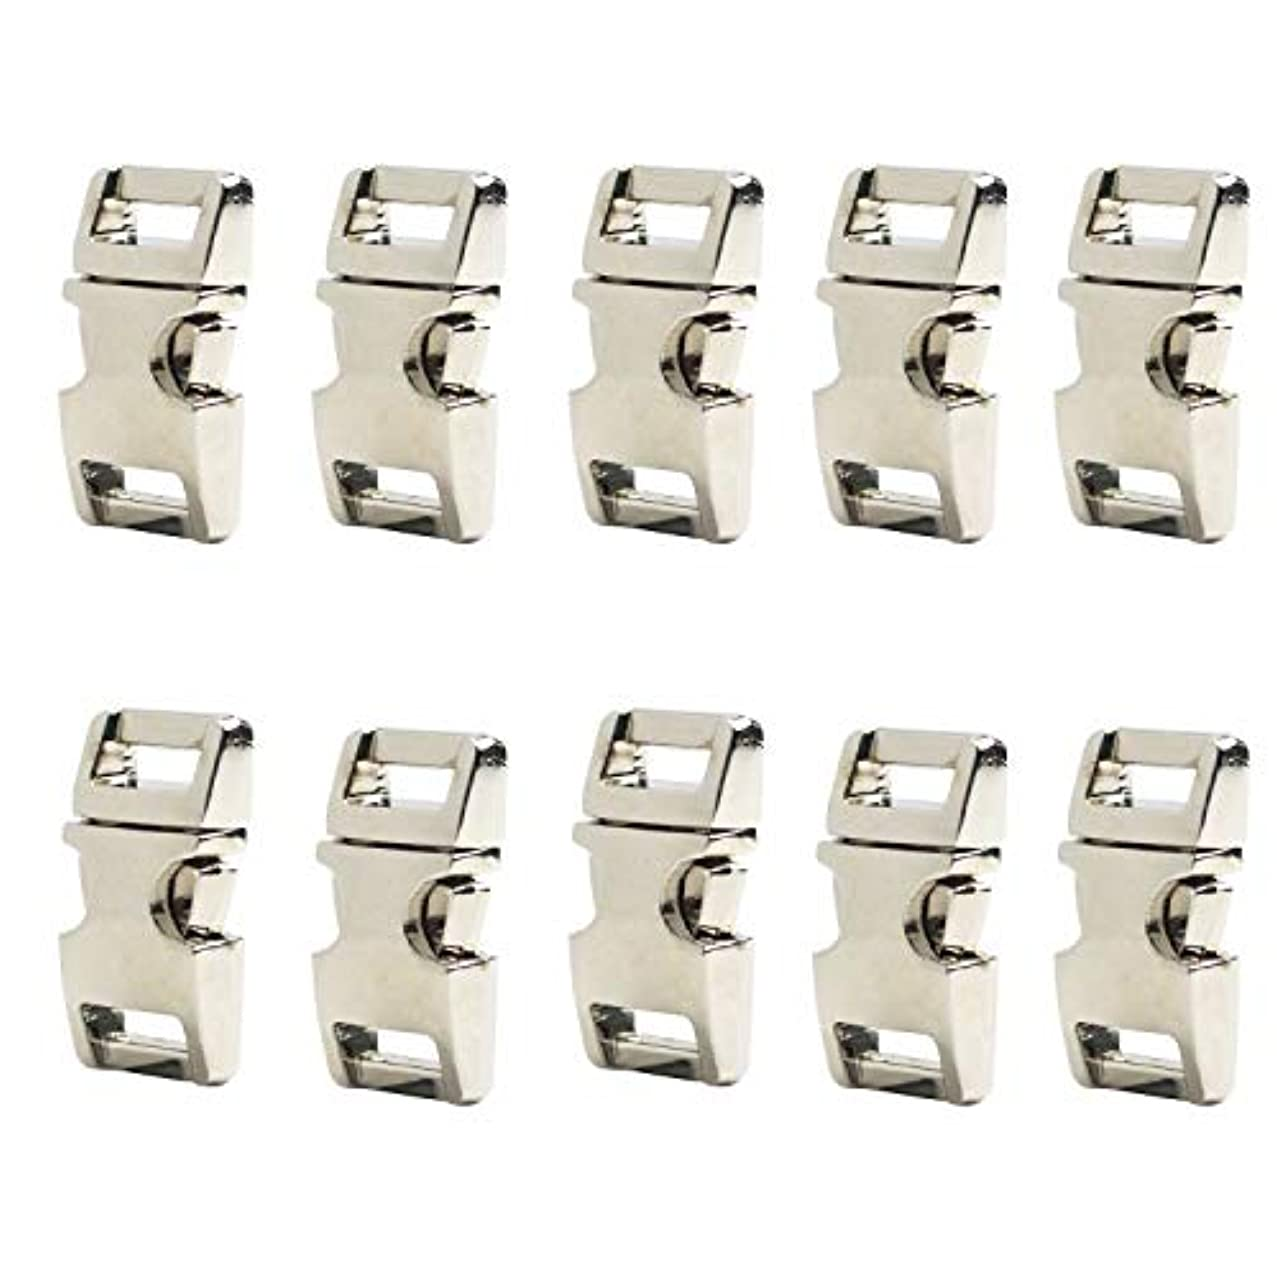 River Electronic 10 PCS 5/8 inch Flat Silver Color Metal Side Release Buckles